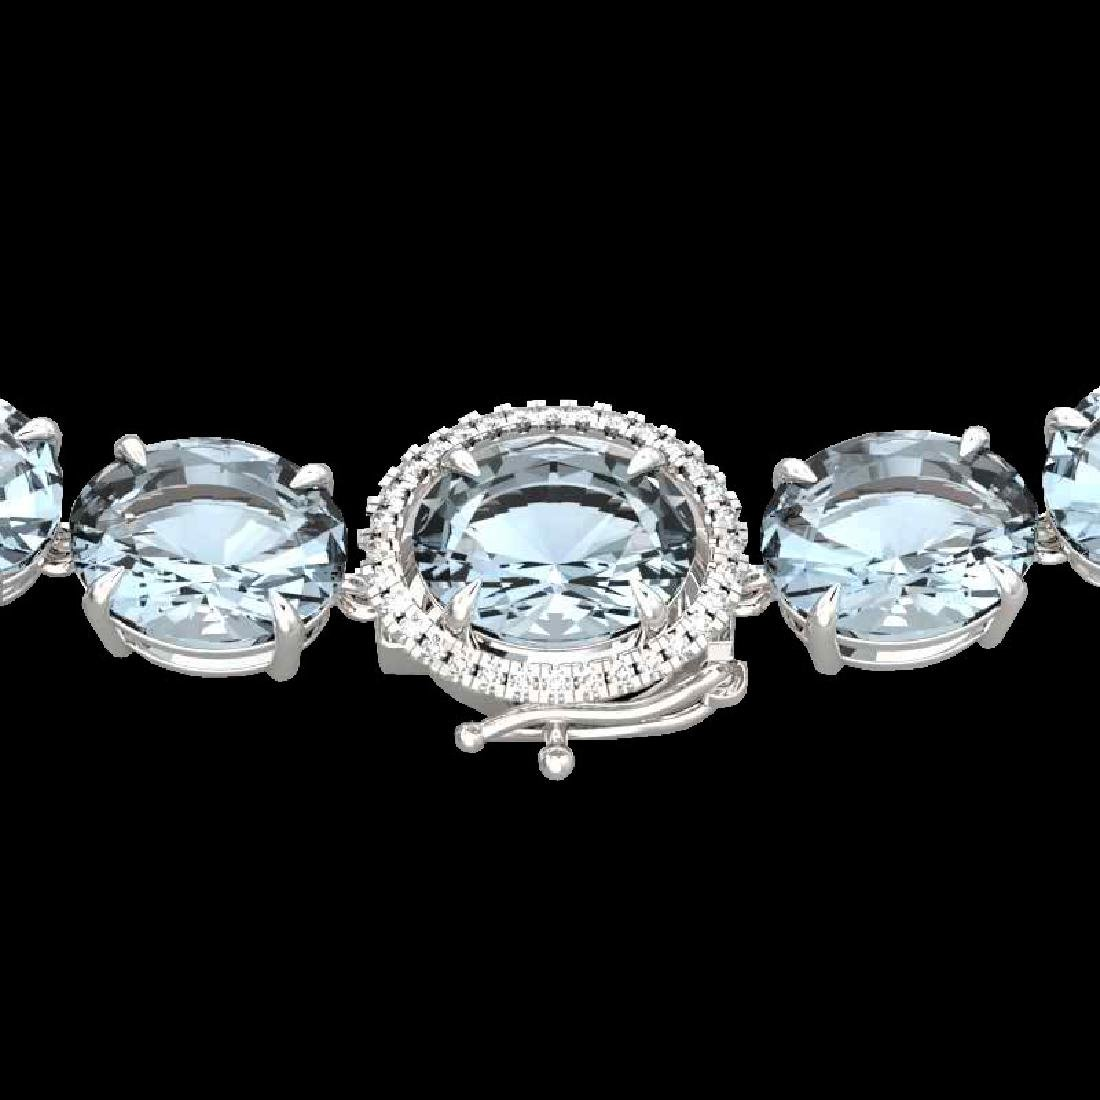 136 CTW Aquamarine & VS/SI Diamond Halo Micro Eternity